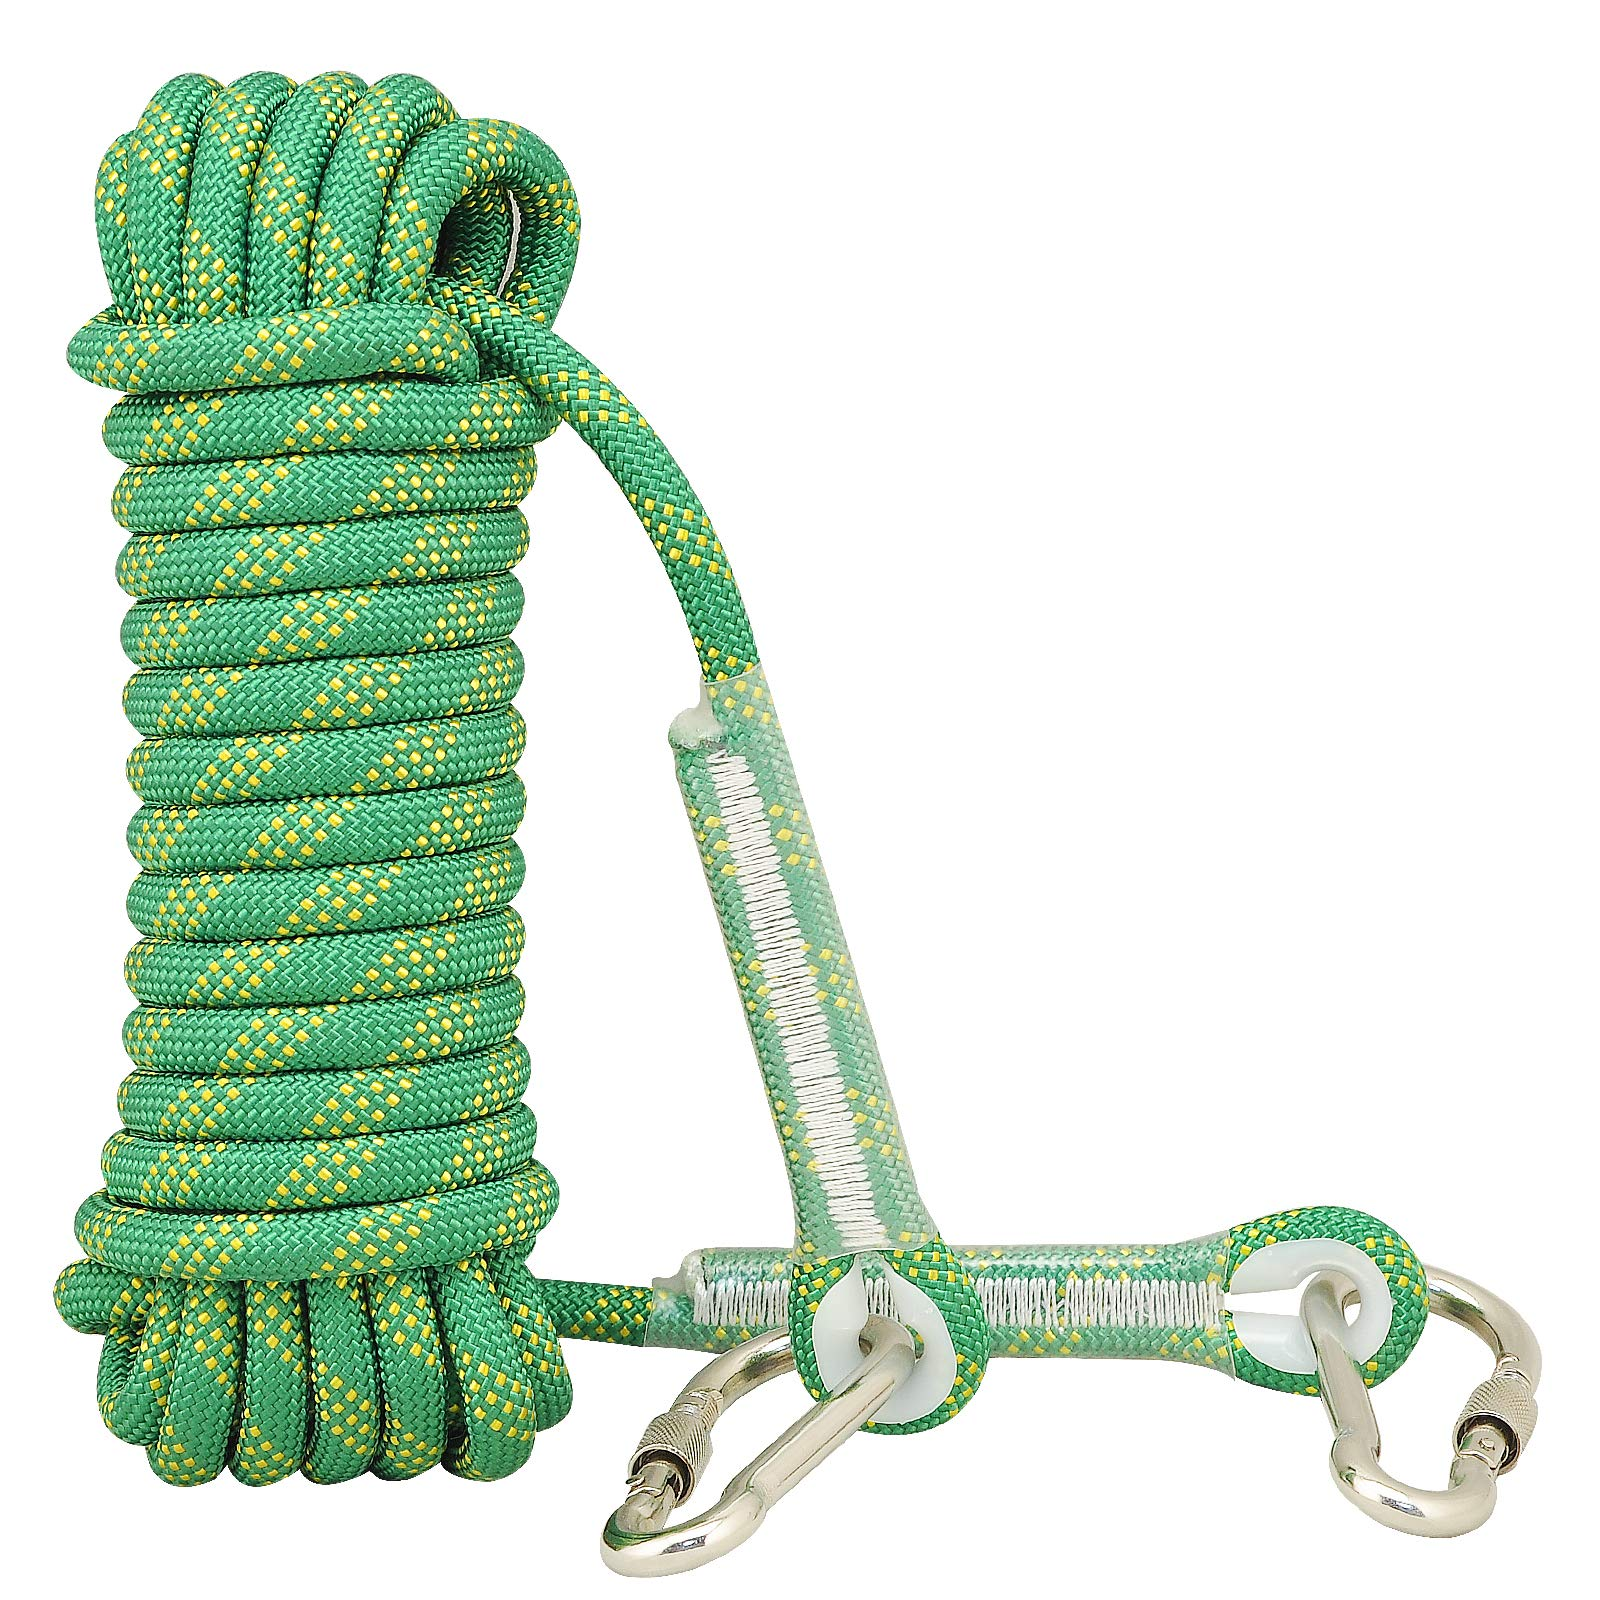 Syiswei Rock Climbing Rope 12MM, (10m,32ft)(20m,65ft) (30m,98ft) Static Outdoor Climbing Rope, Safety Rope Tree Swing Climbing Rope